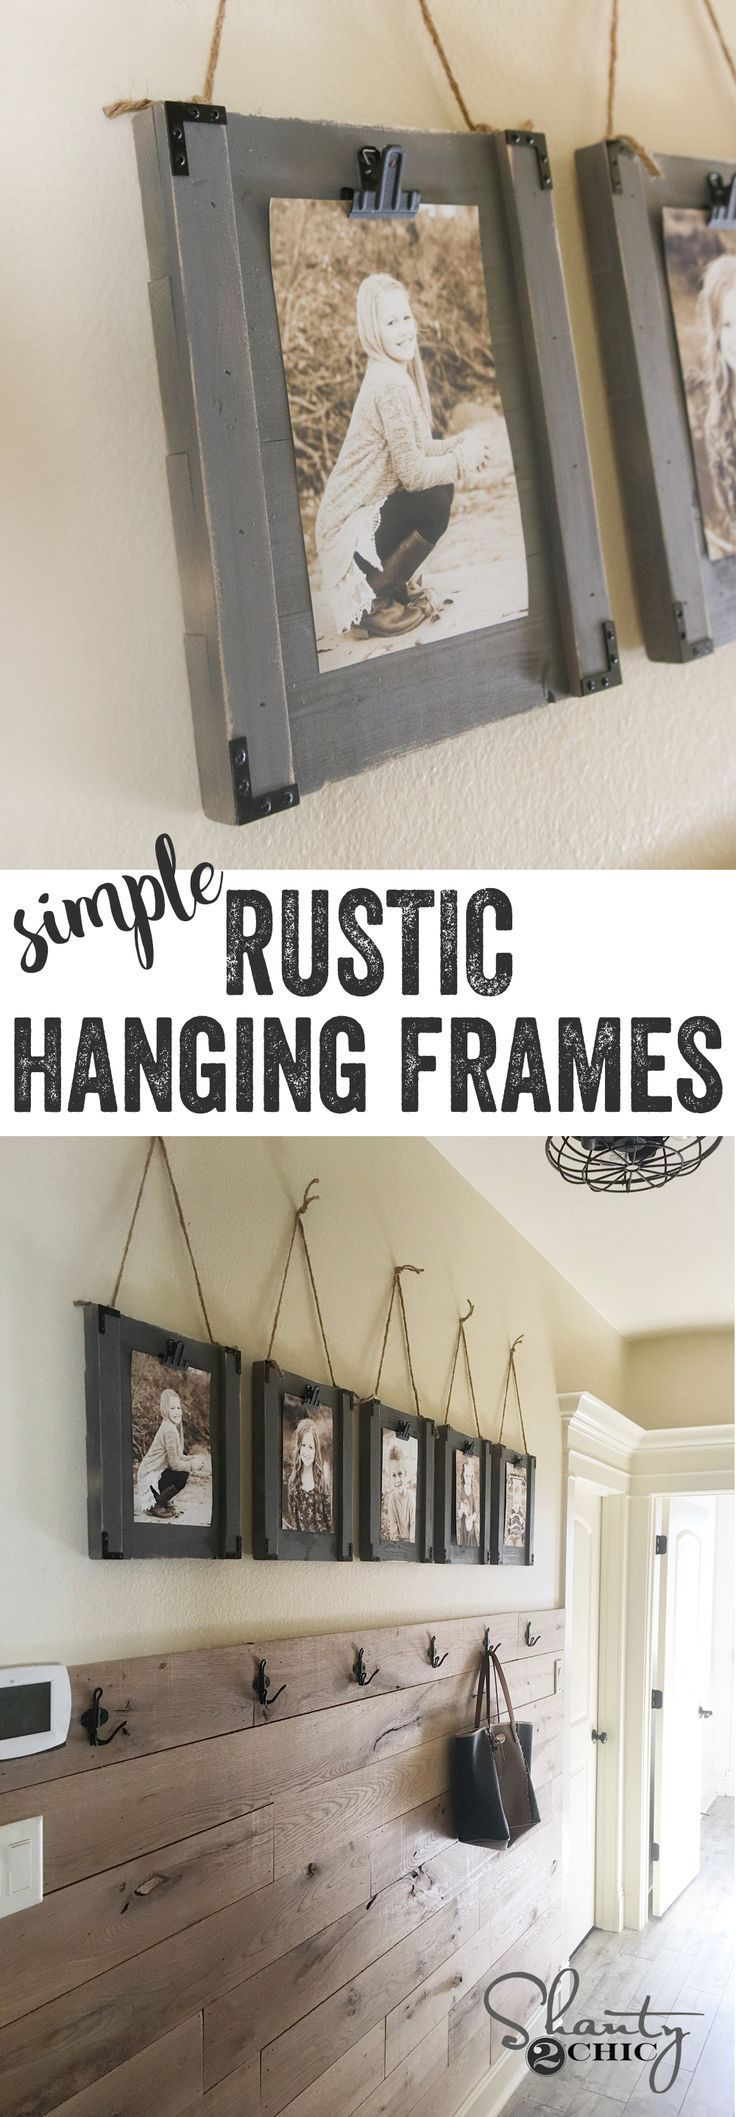 633 best diy picture frames and gallery walls images on pinterest diy hanging frames and youtube video solutioingenieria Choice Image